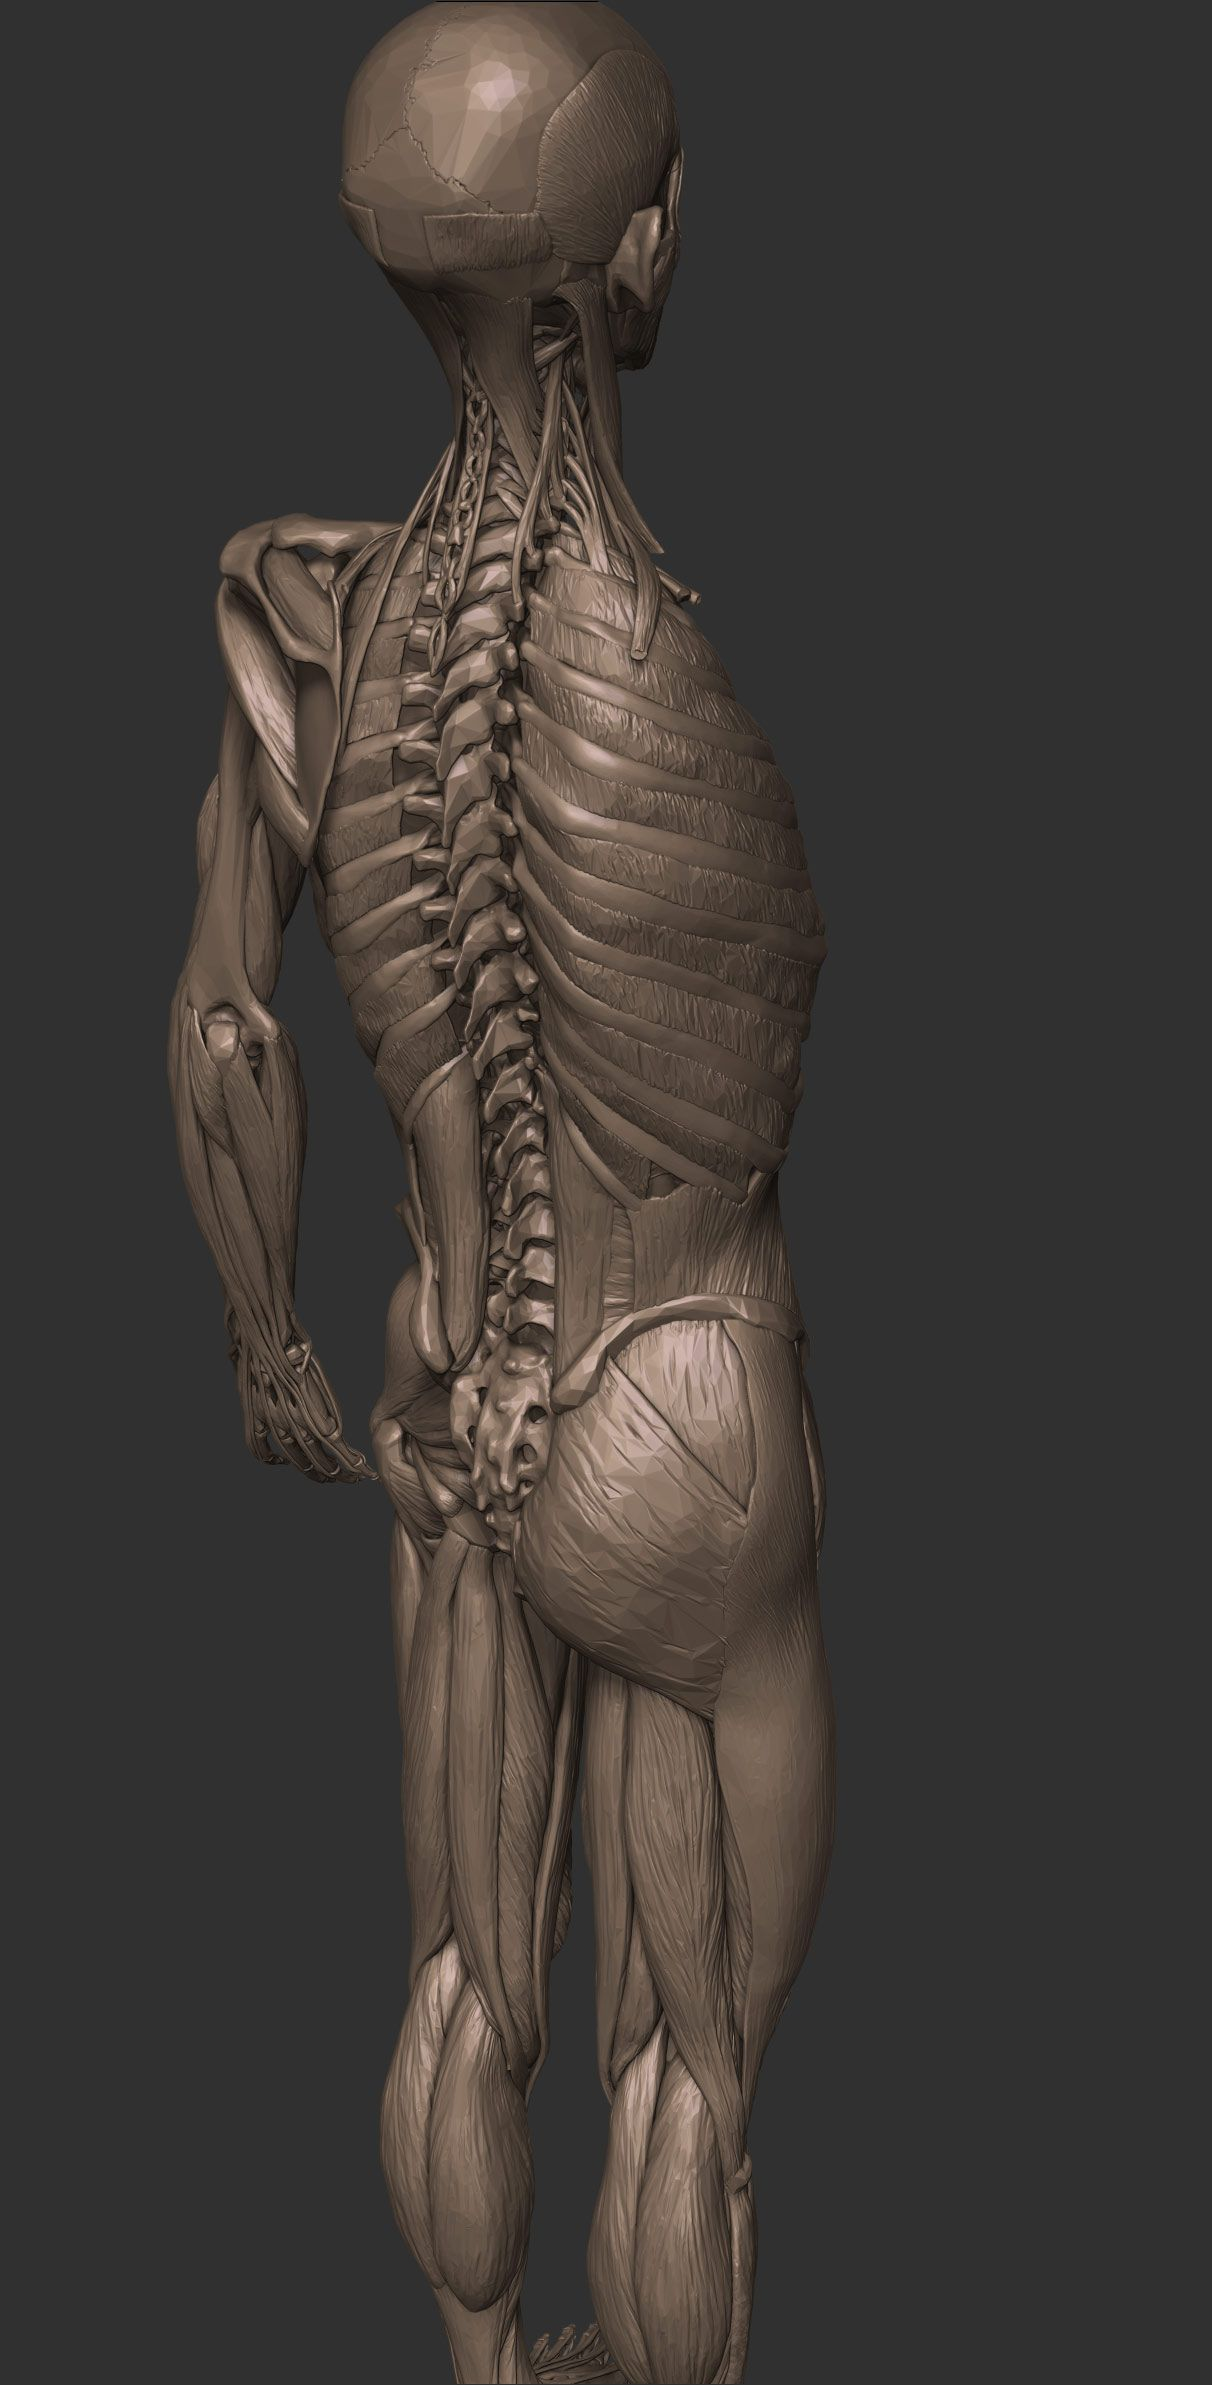 Full anatomy model free download | CGVILLA | Zbrush/Sculpture ...